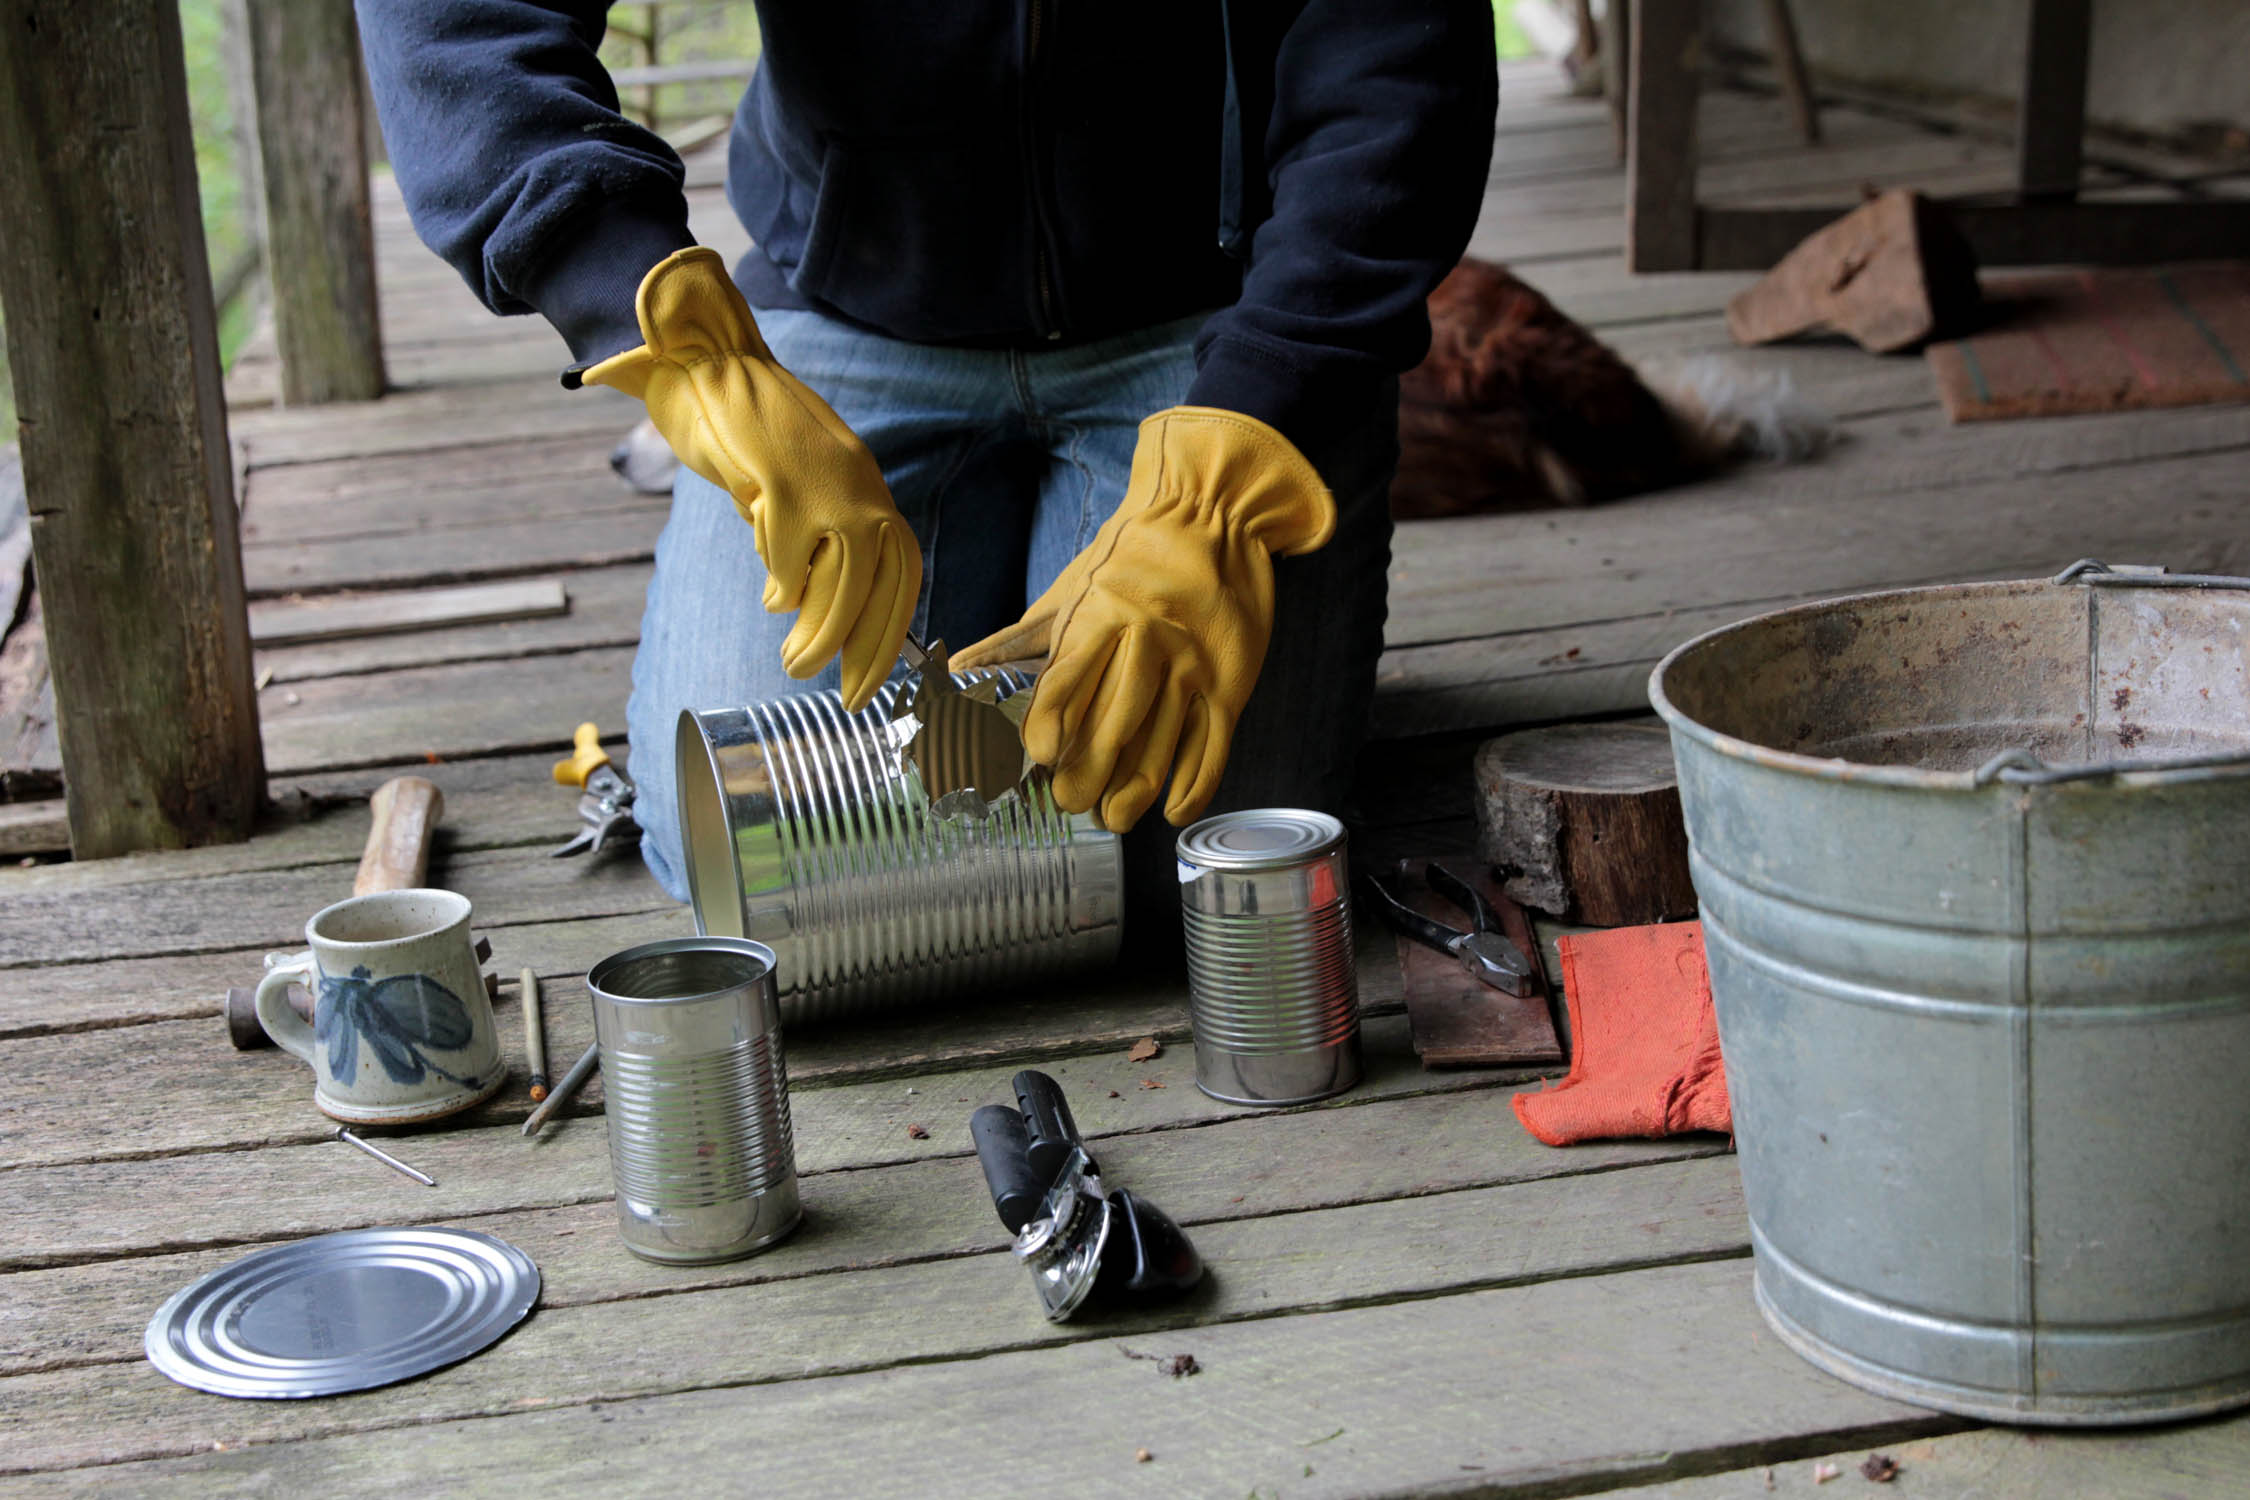 Rocket stove 4 log cabin cooking for Tin can rocket stove